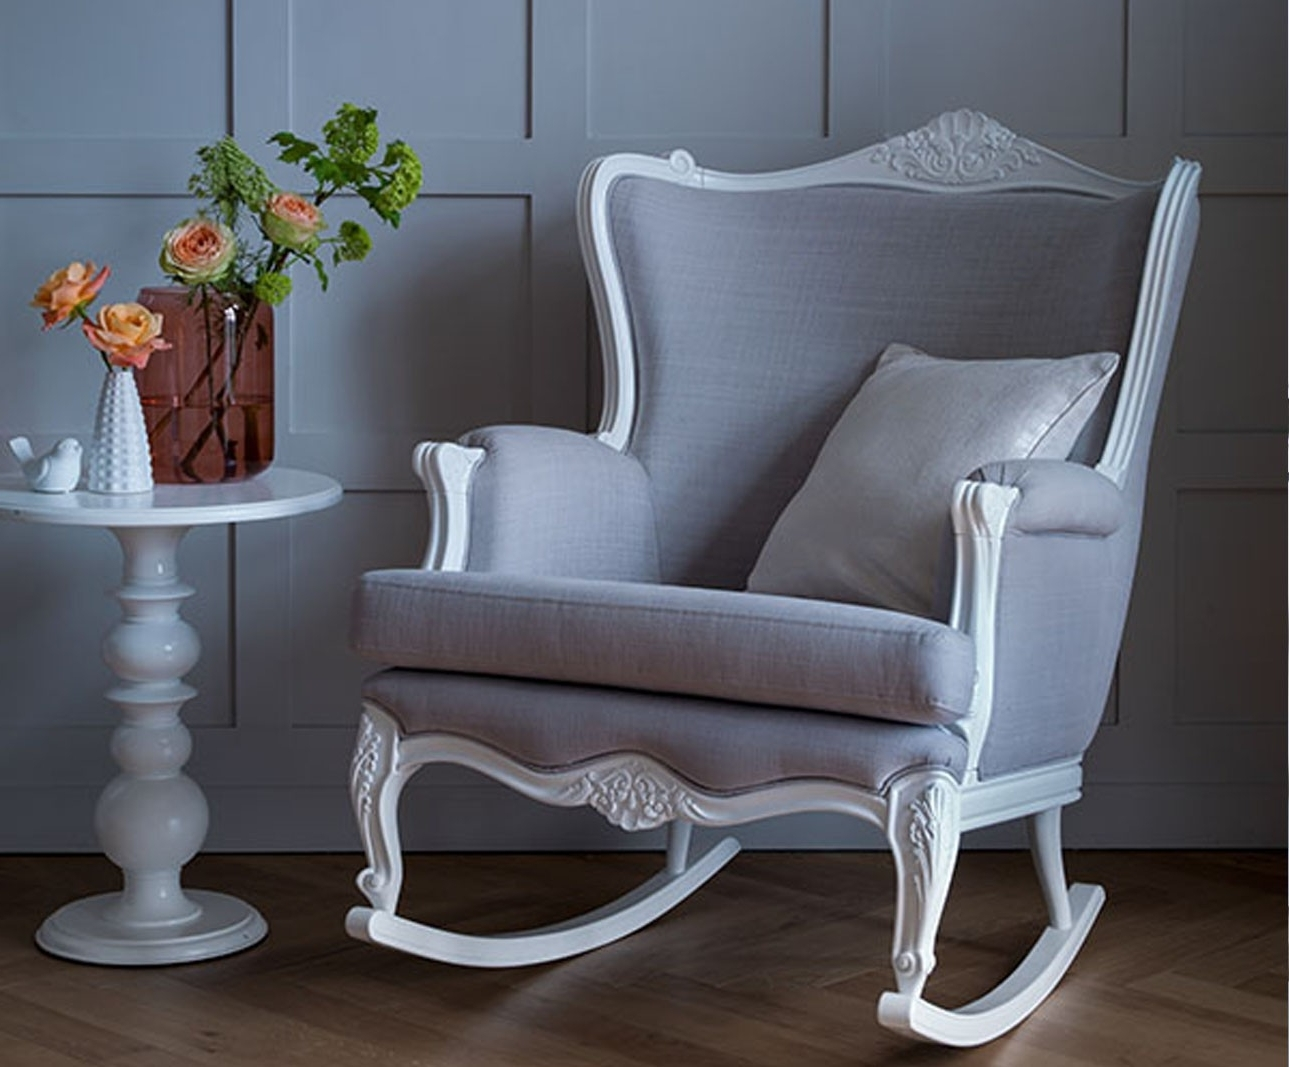 Well Liked Luxury Nursing Rocking Chair — All Modern Rocking Chairs : Good And Pertaining To Rocking Chairs For Nursing (View 20 of 20)